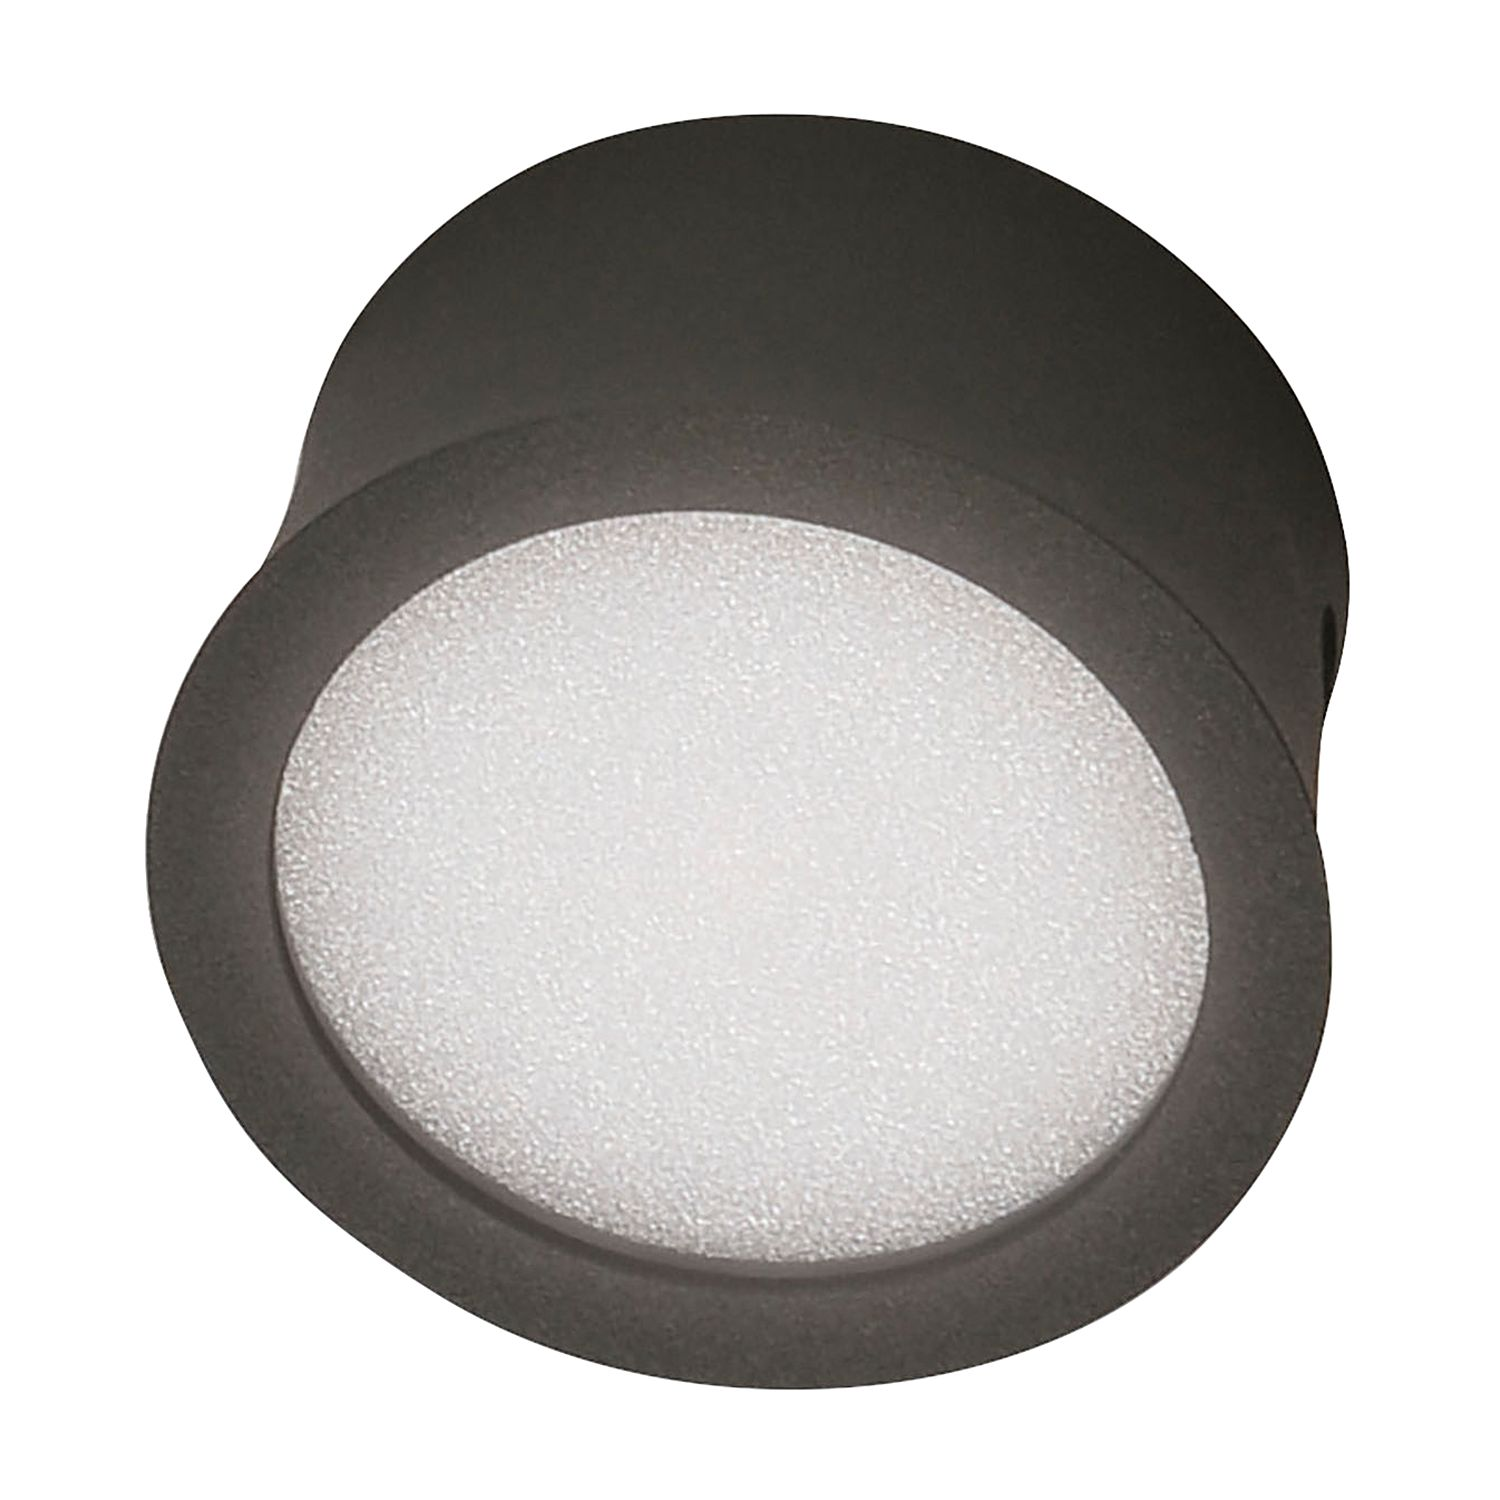 home24 LED-Spot Ponza | Lampen > Strahler und Systeme | Siehe shop | Fabas Luce